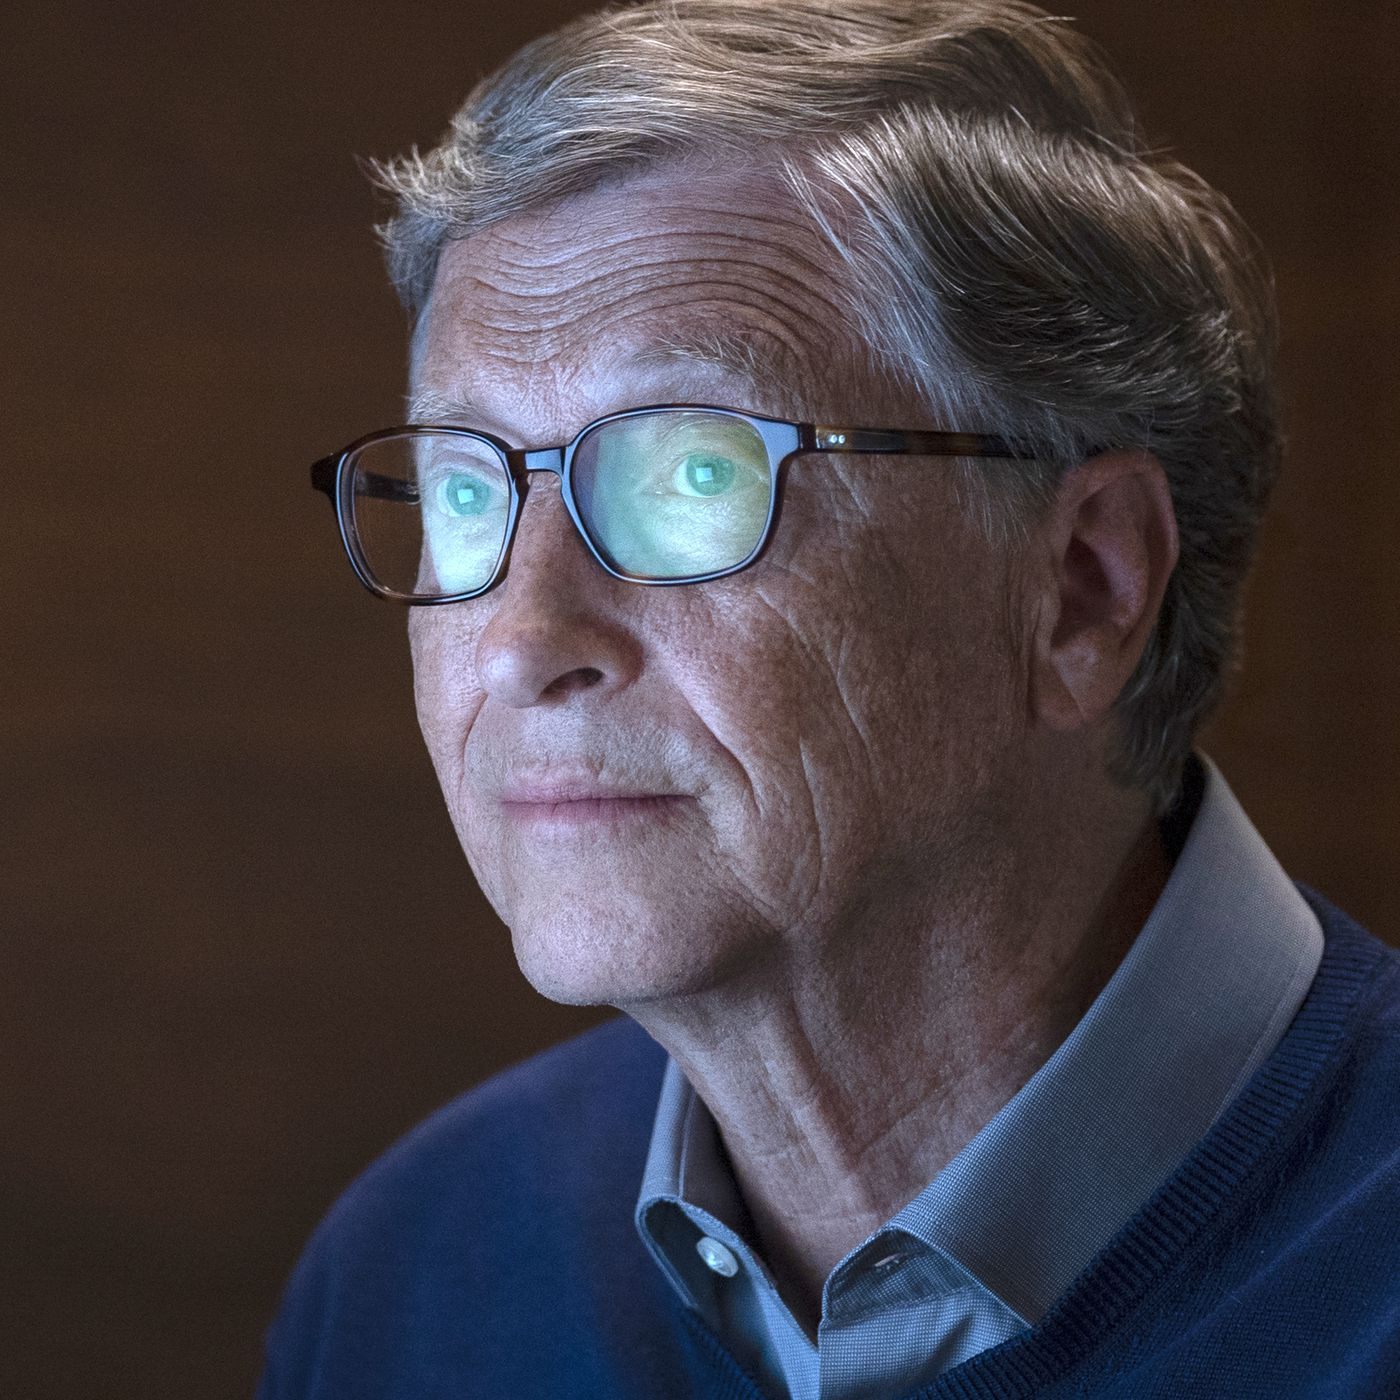 theverge.com - Kim Lyons - Bill Gates says COVID-19 drugs should go where needed, not just 'the highest bidder'